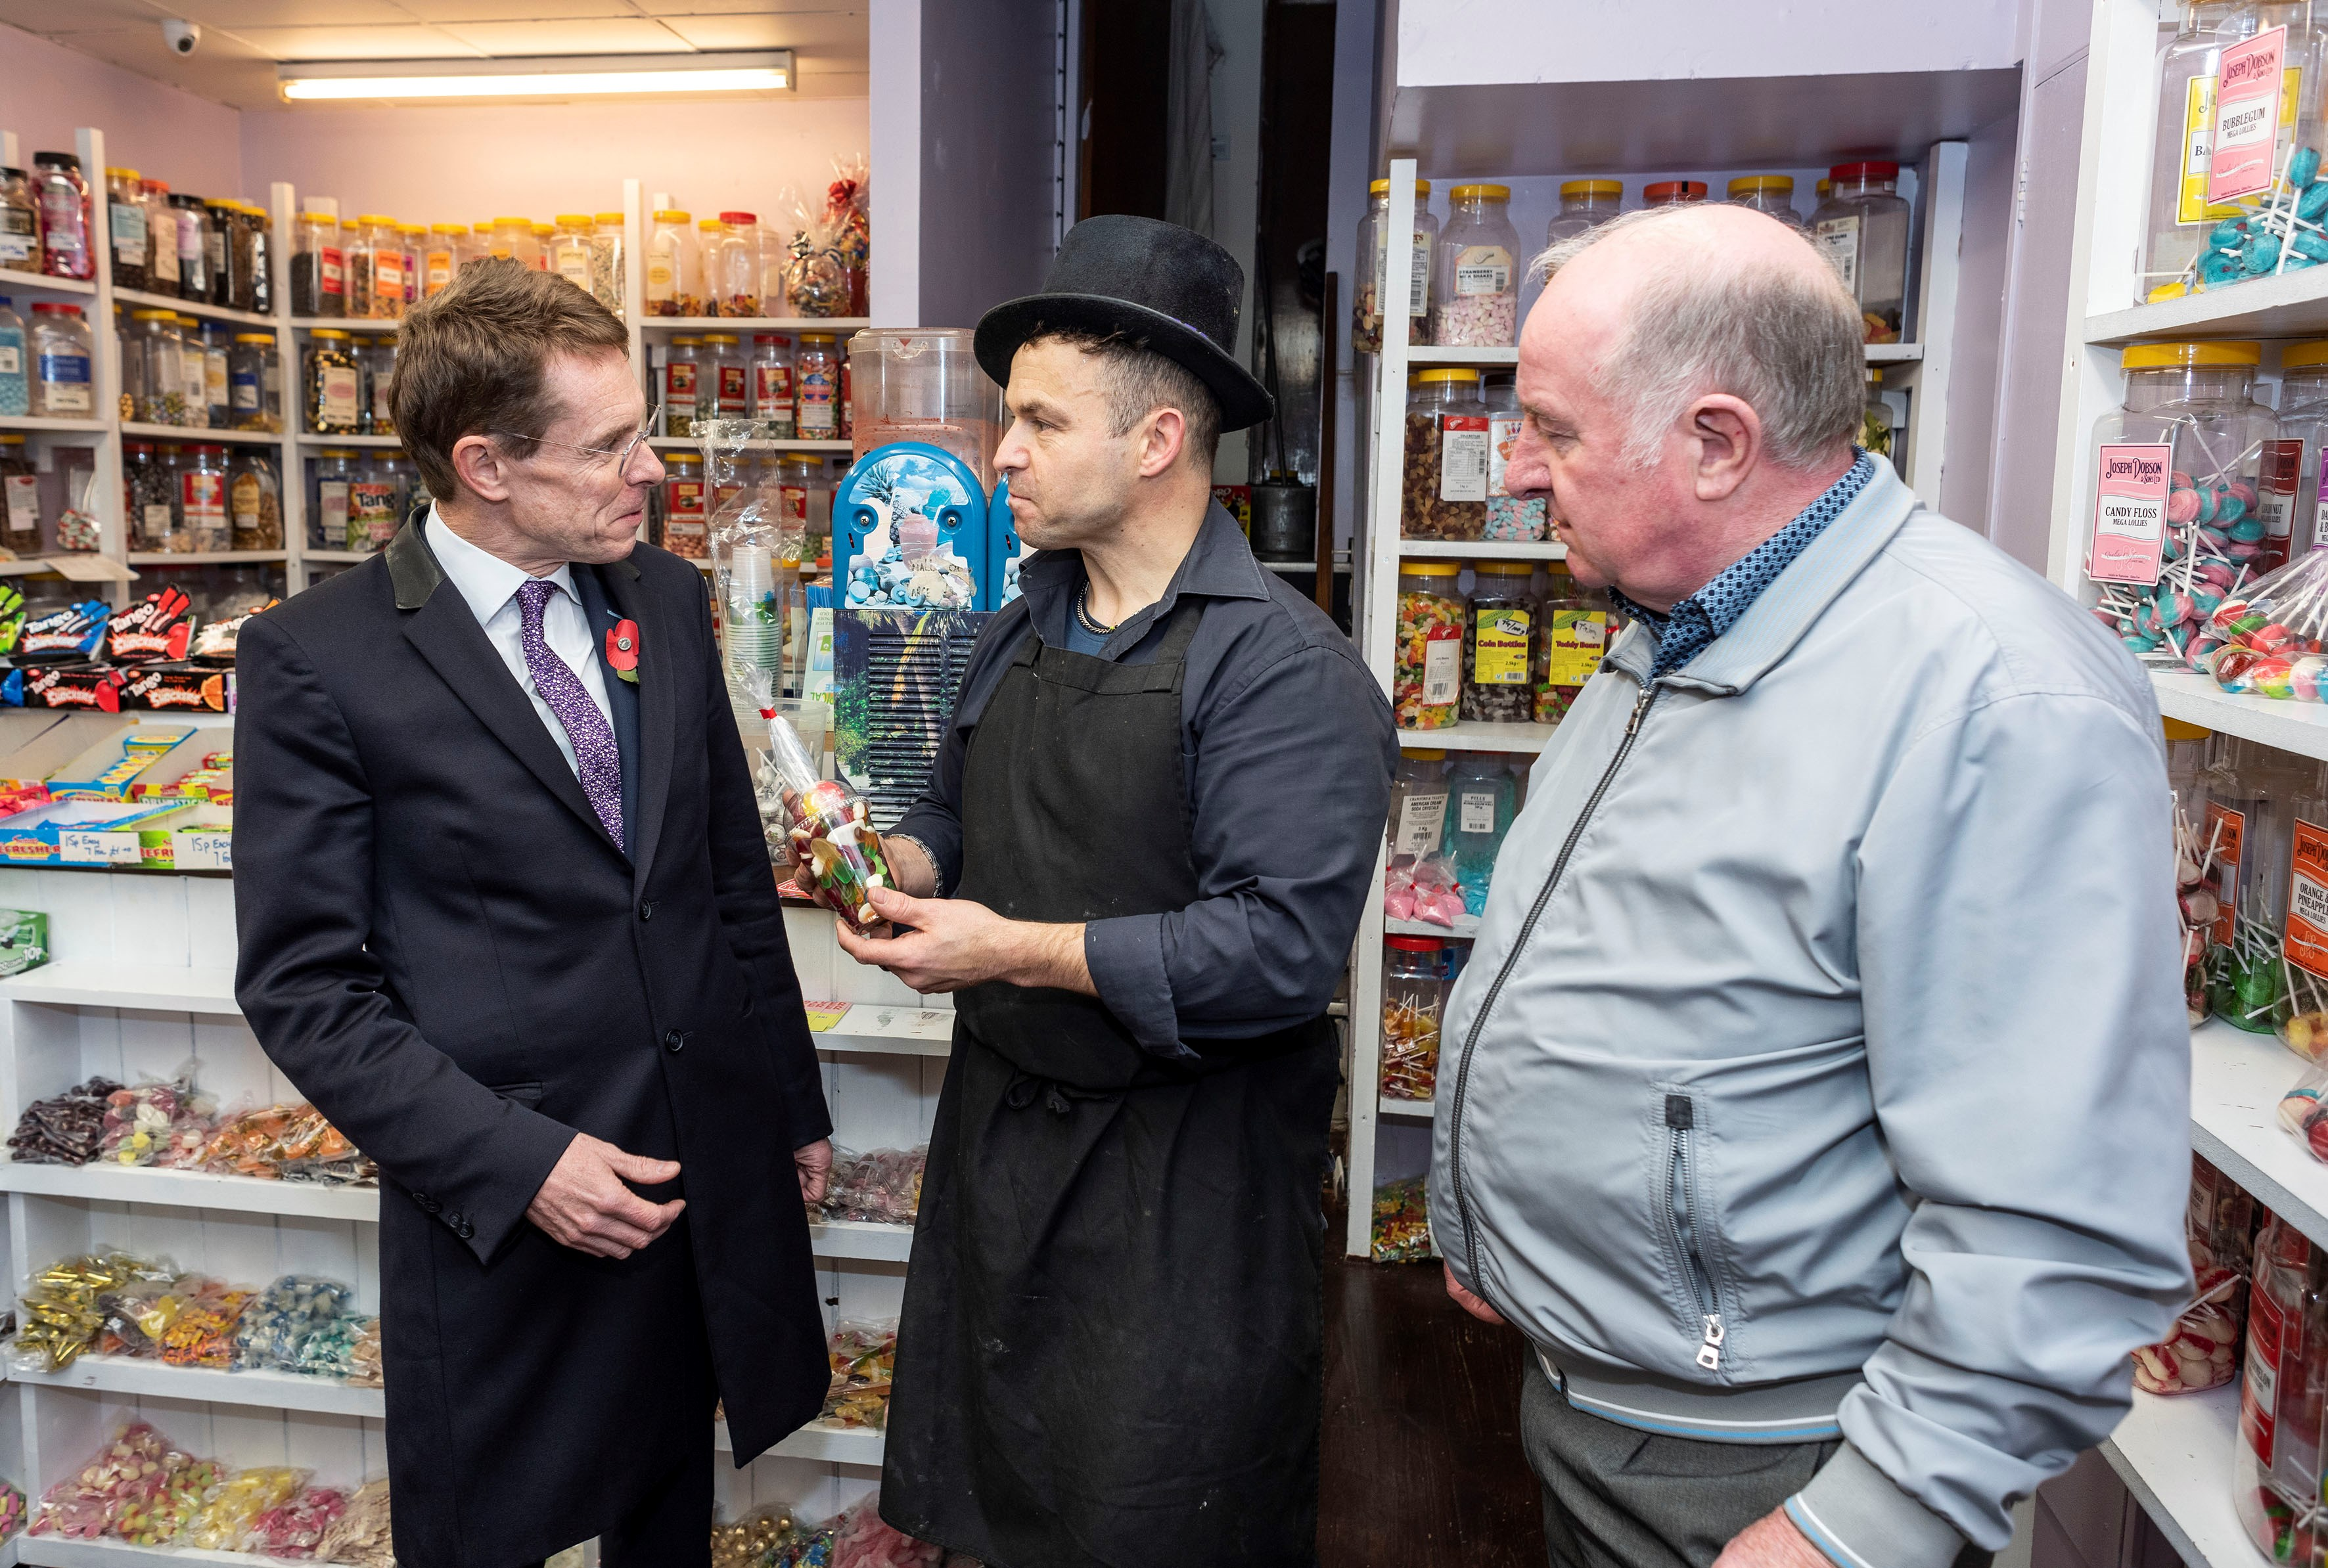 Mayor pledges support for funding bids to transform high streets